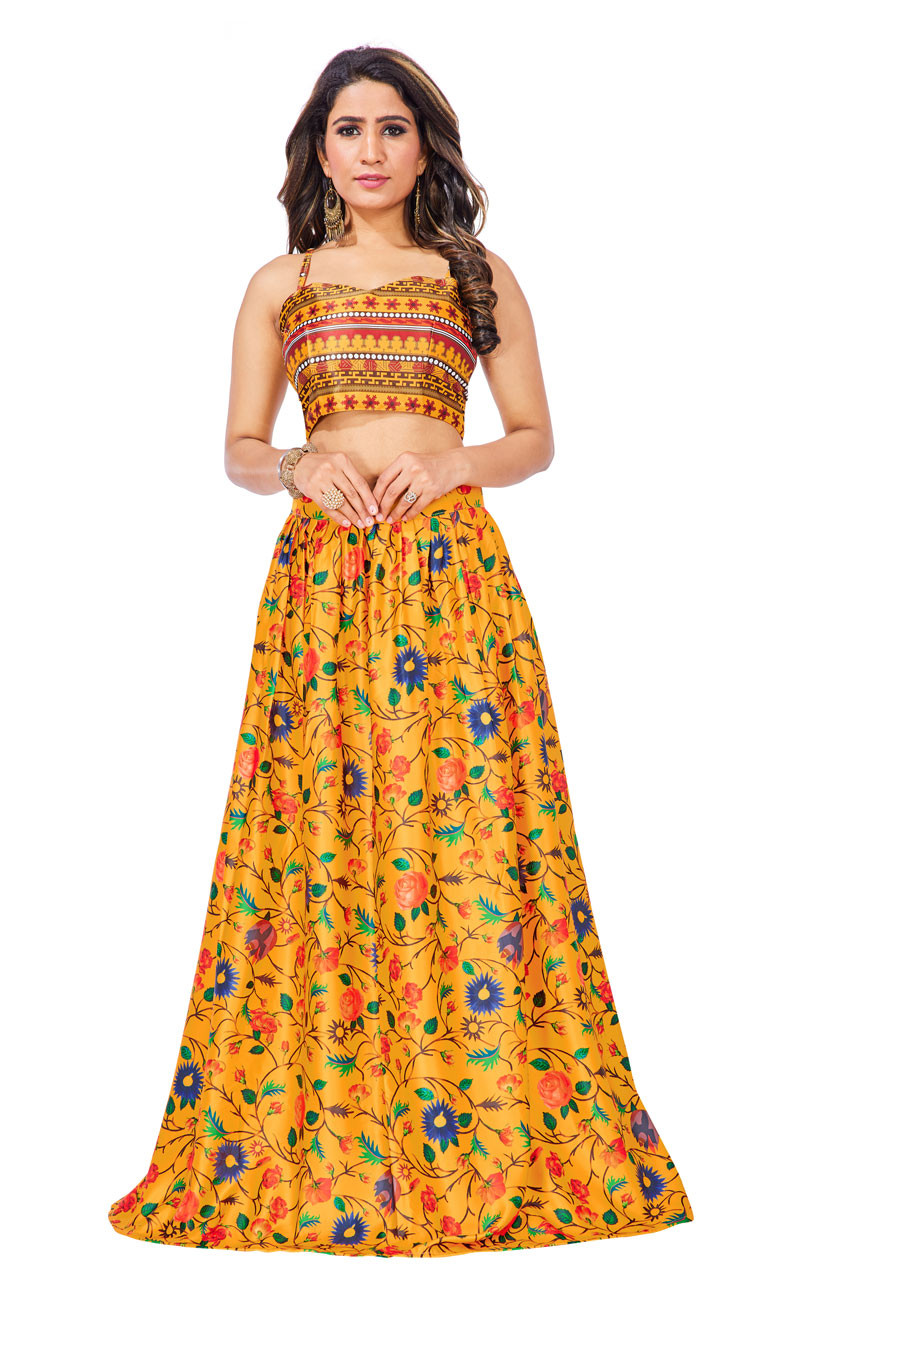 Yellow Colour Digitel Printed Satin Silk Lehenga Choli ZCLC 04